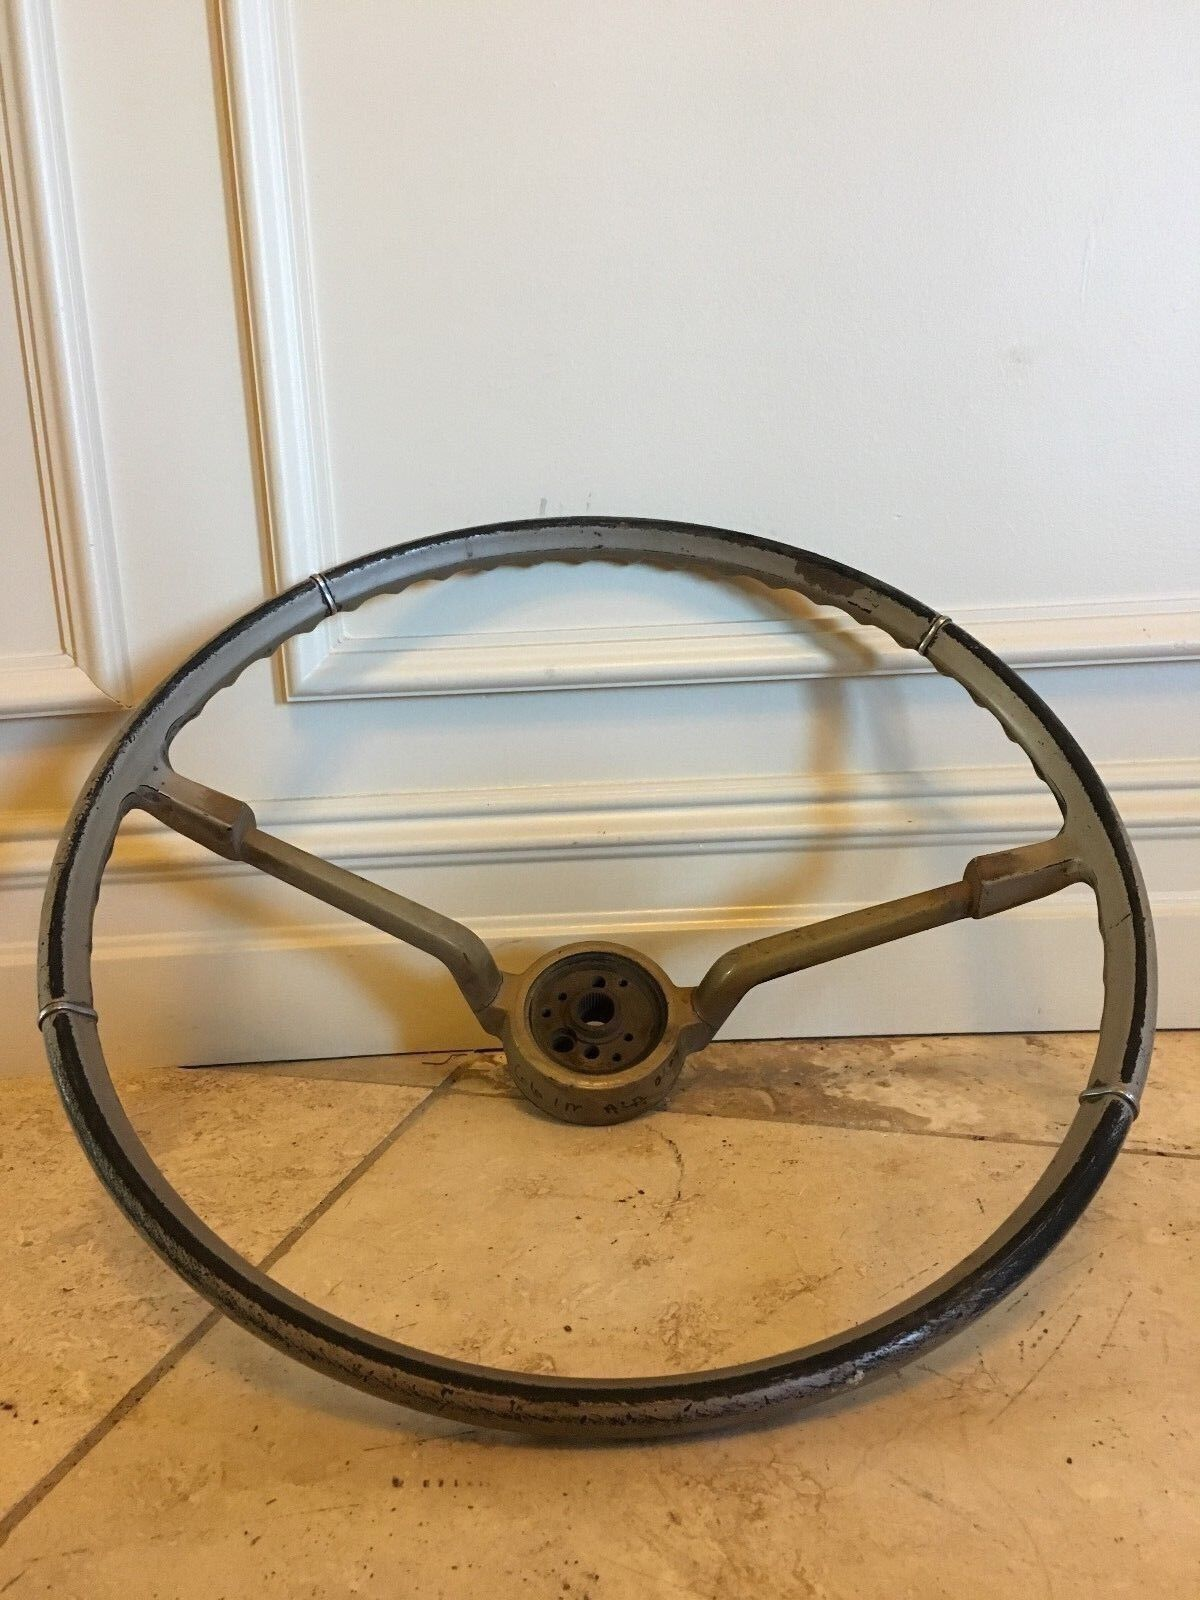 Used Chevrolet Biscayne Steering Wheels And Horns For Sale 1966 Chevy Impala 1965 Ss Super Sport Bel Air Wheel